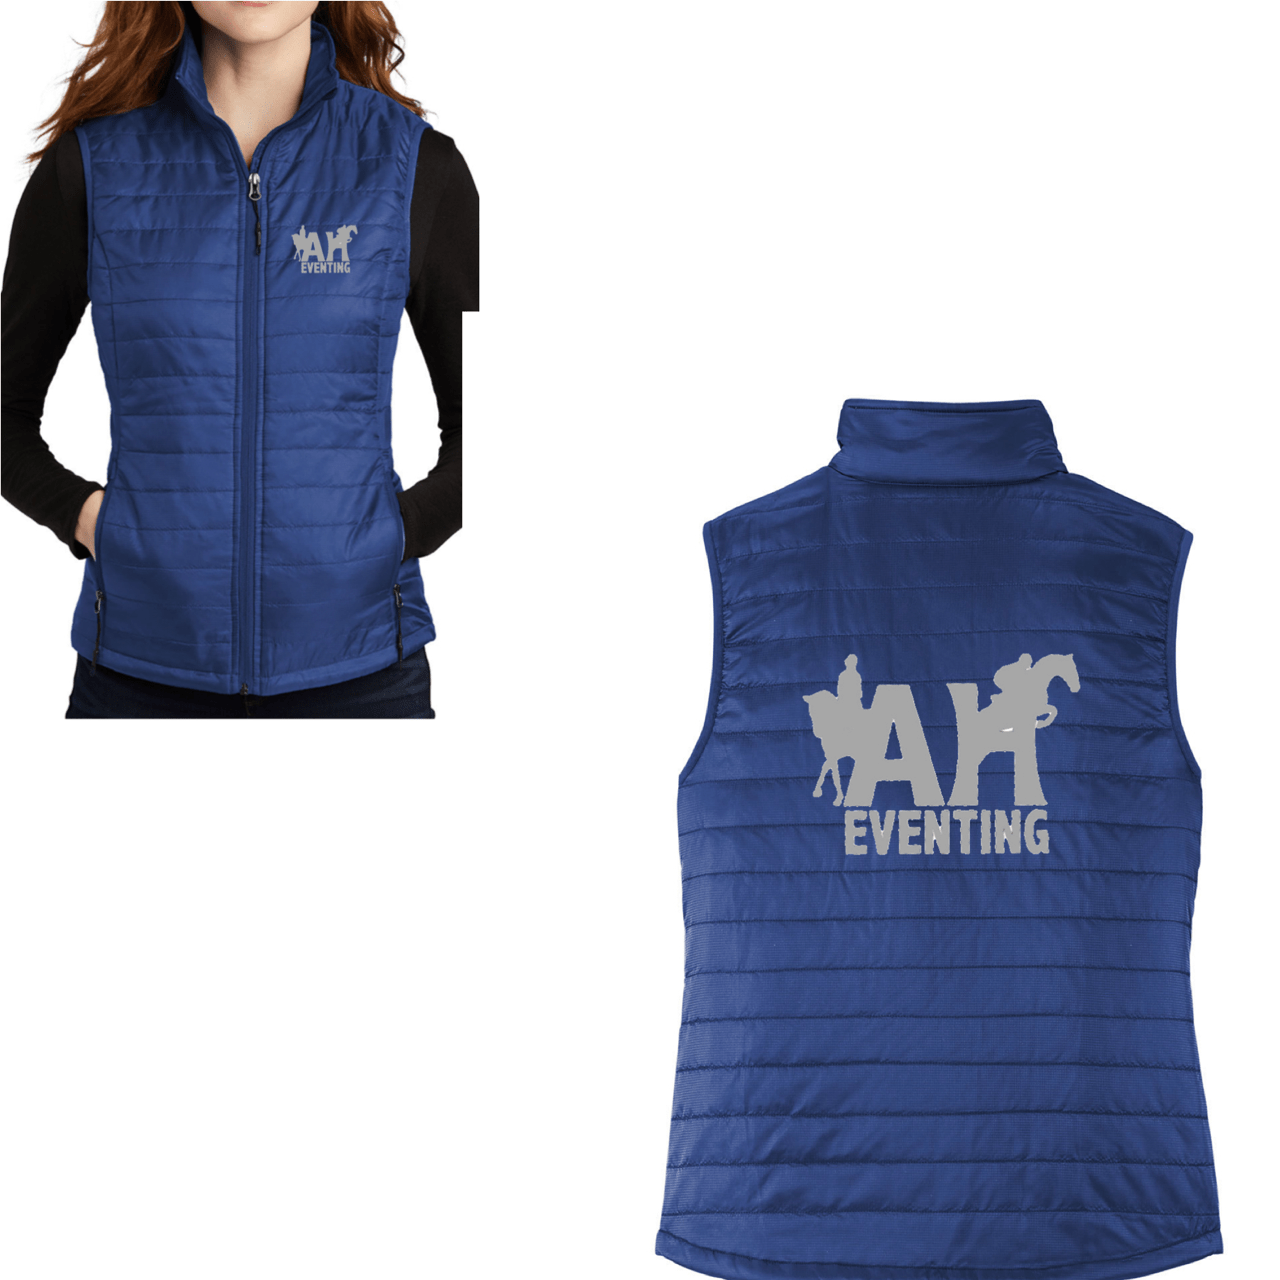 Equestrian Team Apparel Custom Jacket AH Eventing Puffy Vest equestrian team apparel online tack store mobile tack store custom farm apparel custom show stable clothing equestrian lifestyle horse show clothing riding clothes horses equestrian tack store